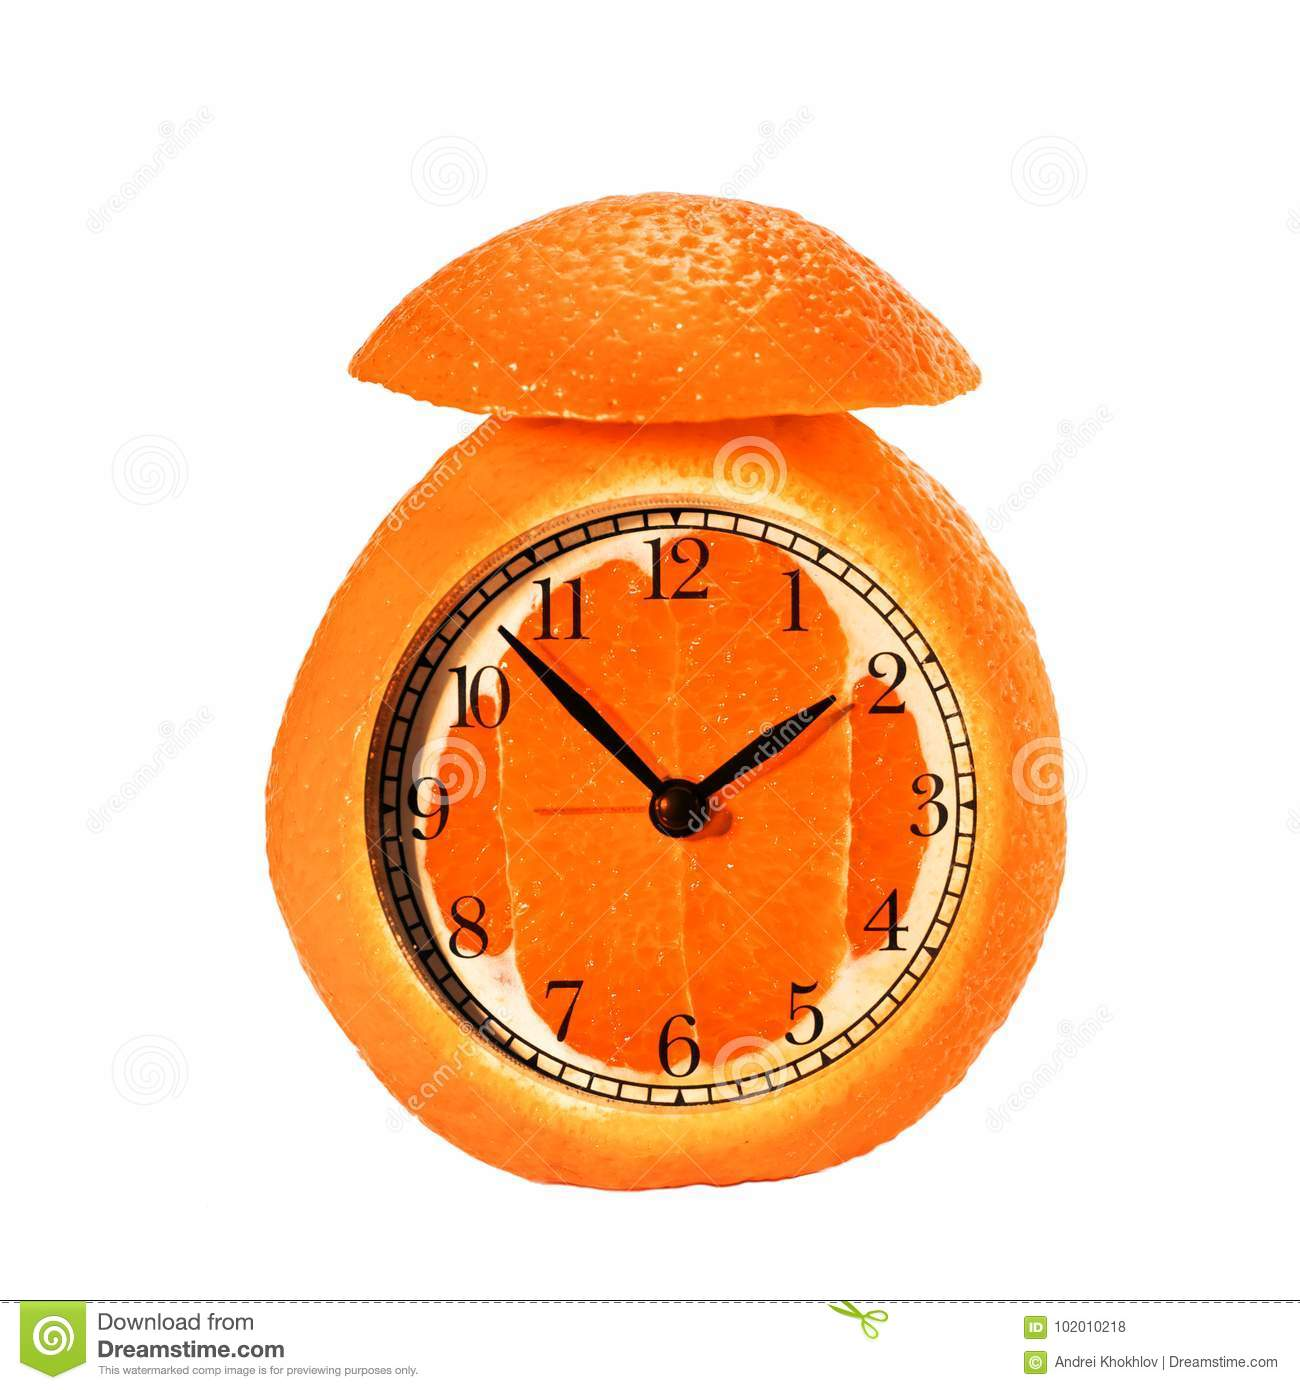 Alarm Clock Made Of Orange Fruit Stock Photo - Image of